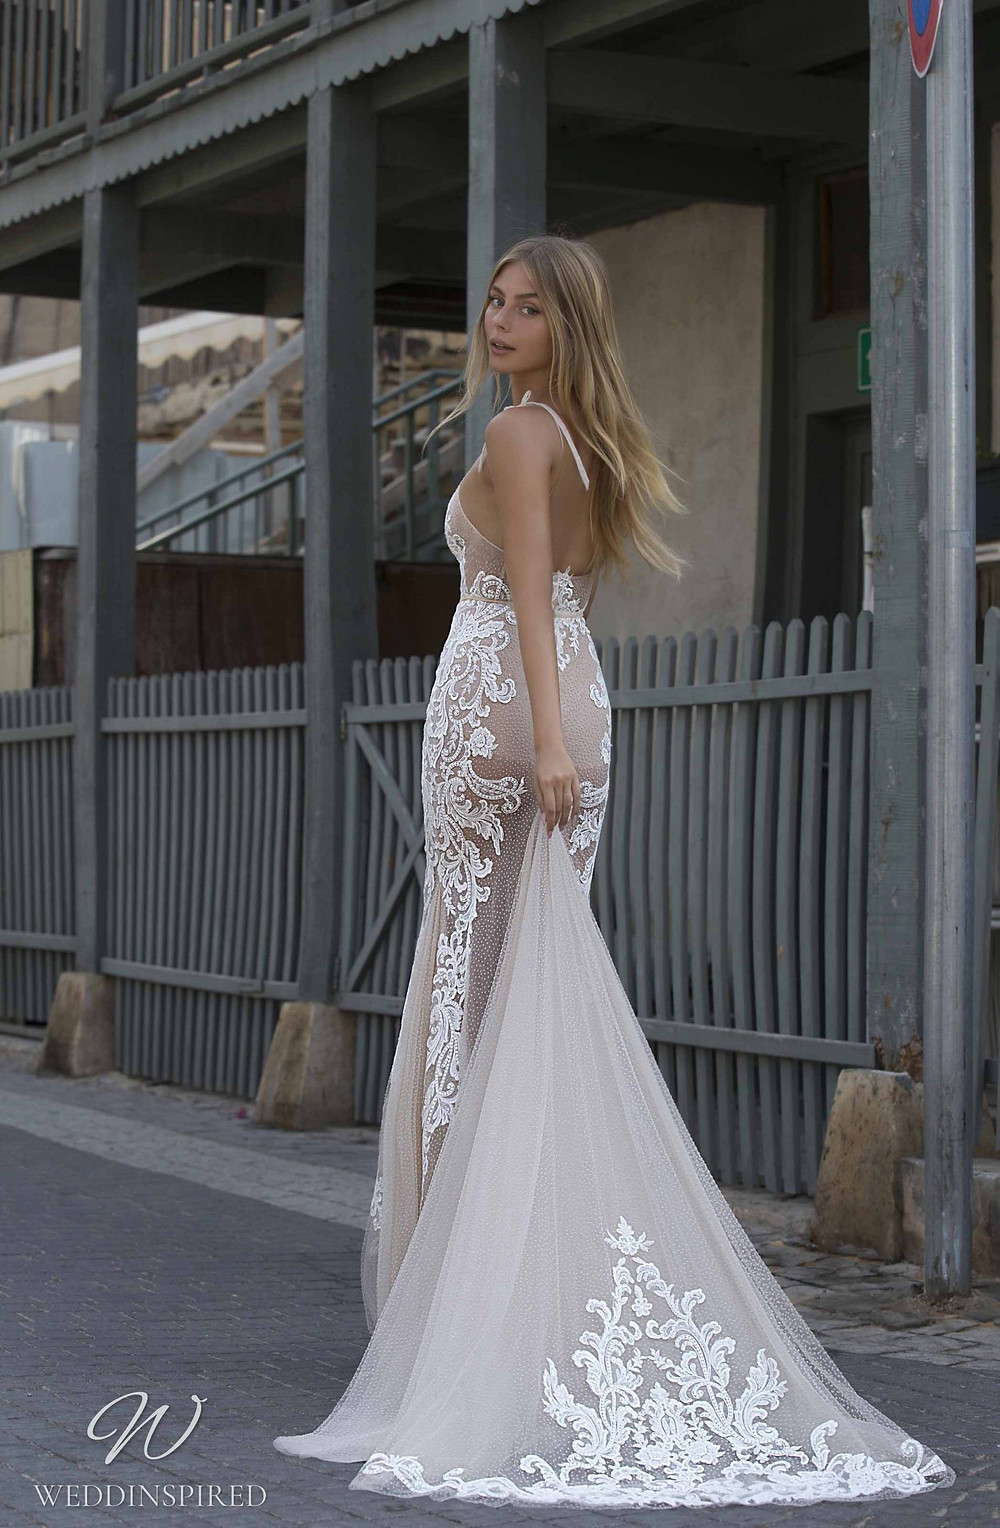 A Berta Priveé No 5 2021 nude mesh and lace mermaid wedding dress with thin straps and a v neck